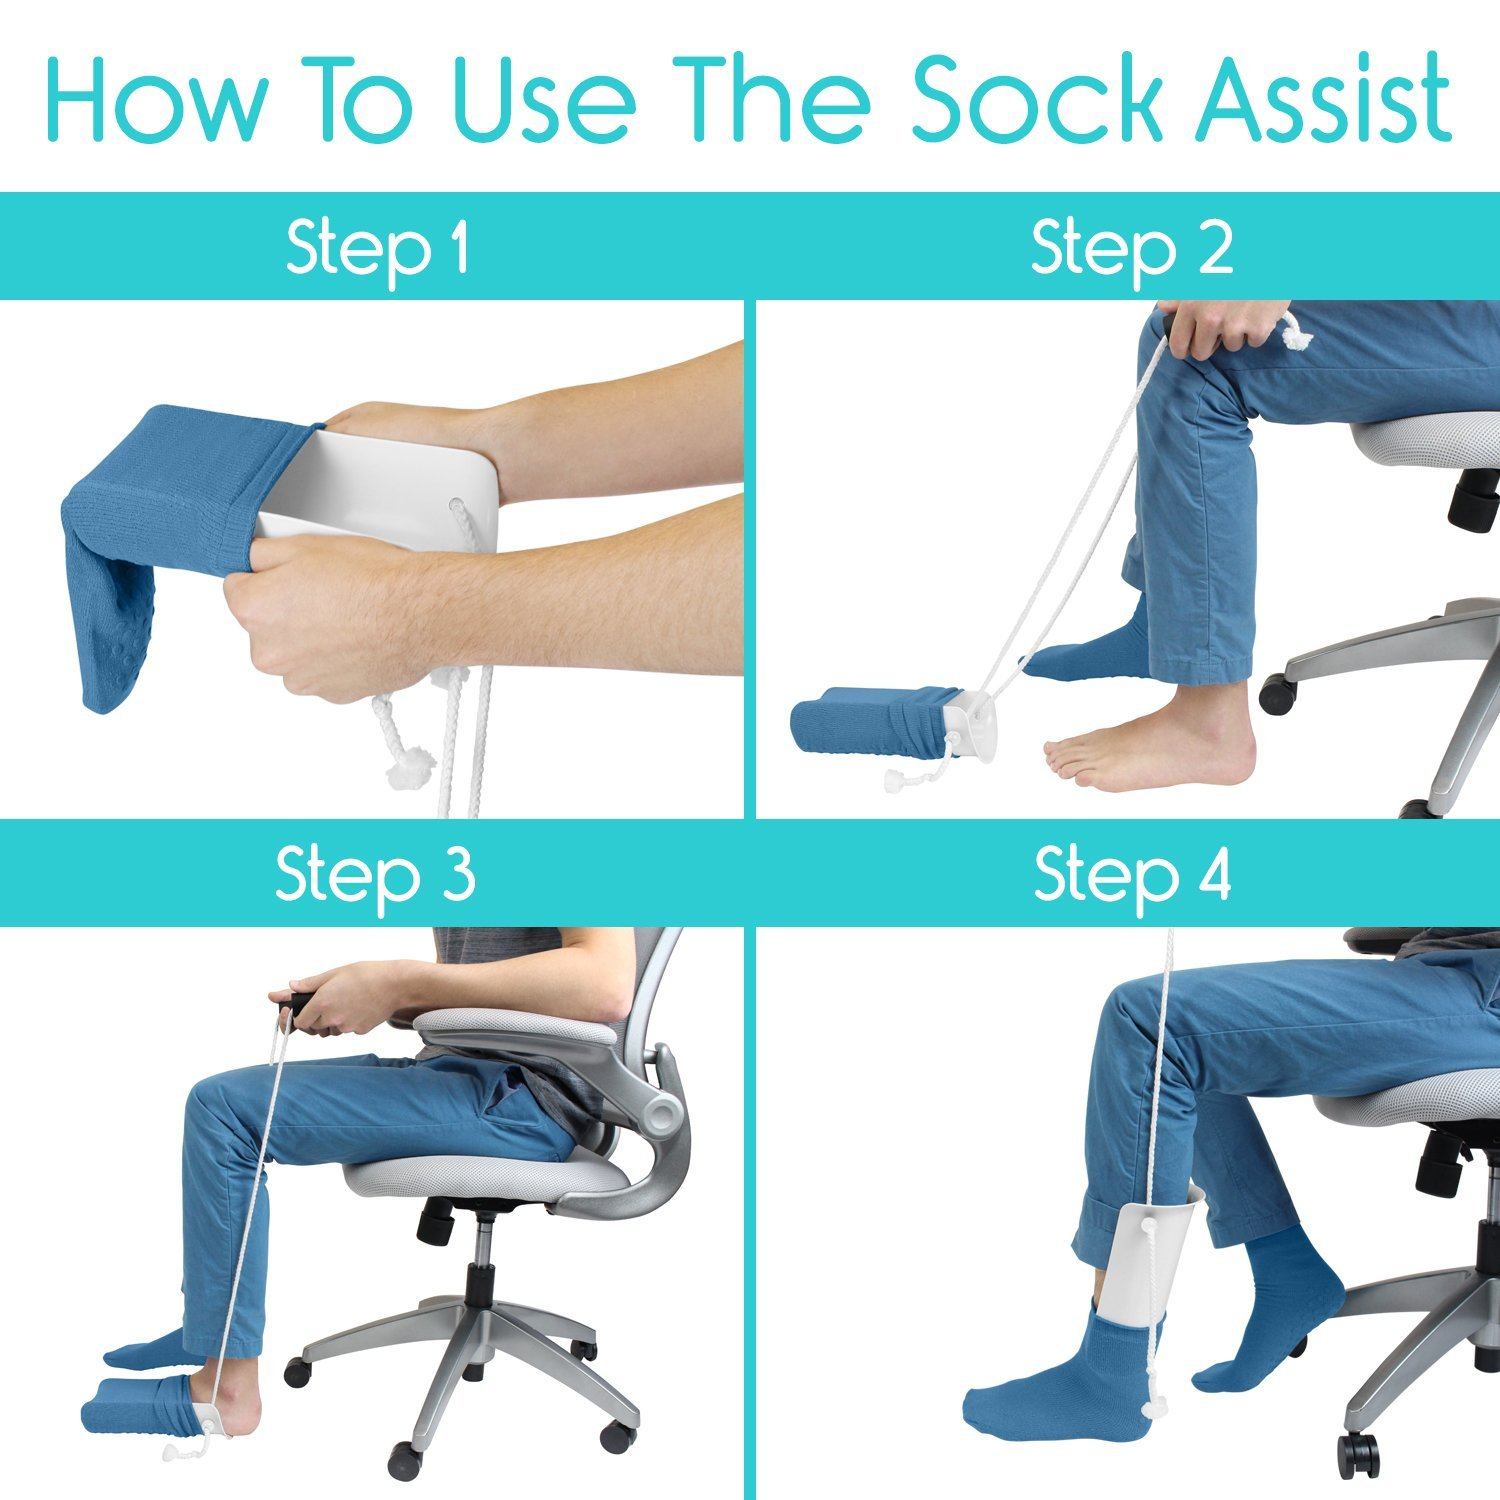 The sock assist